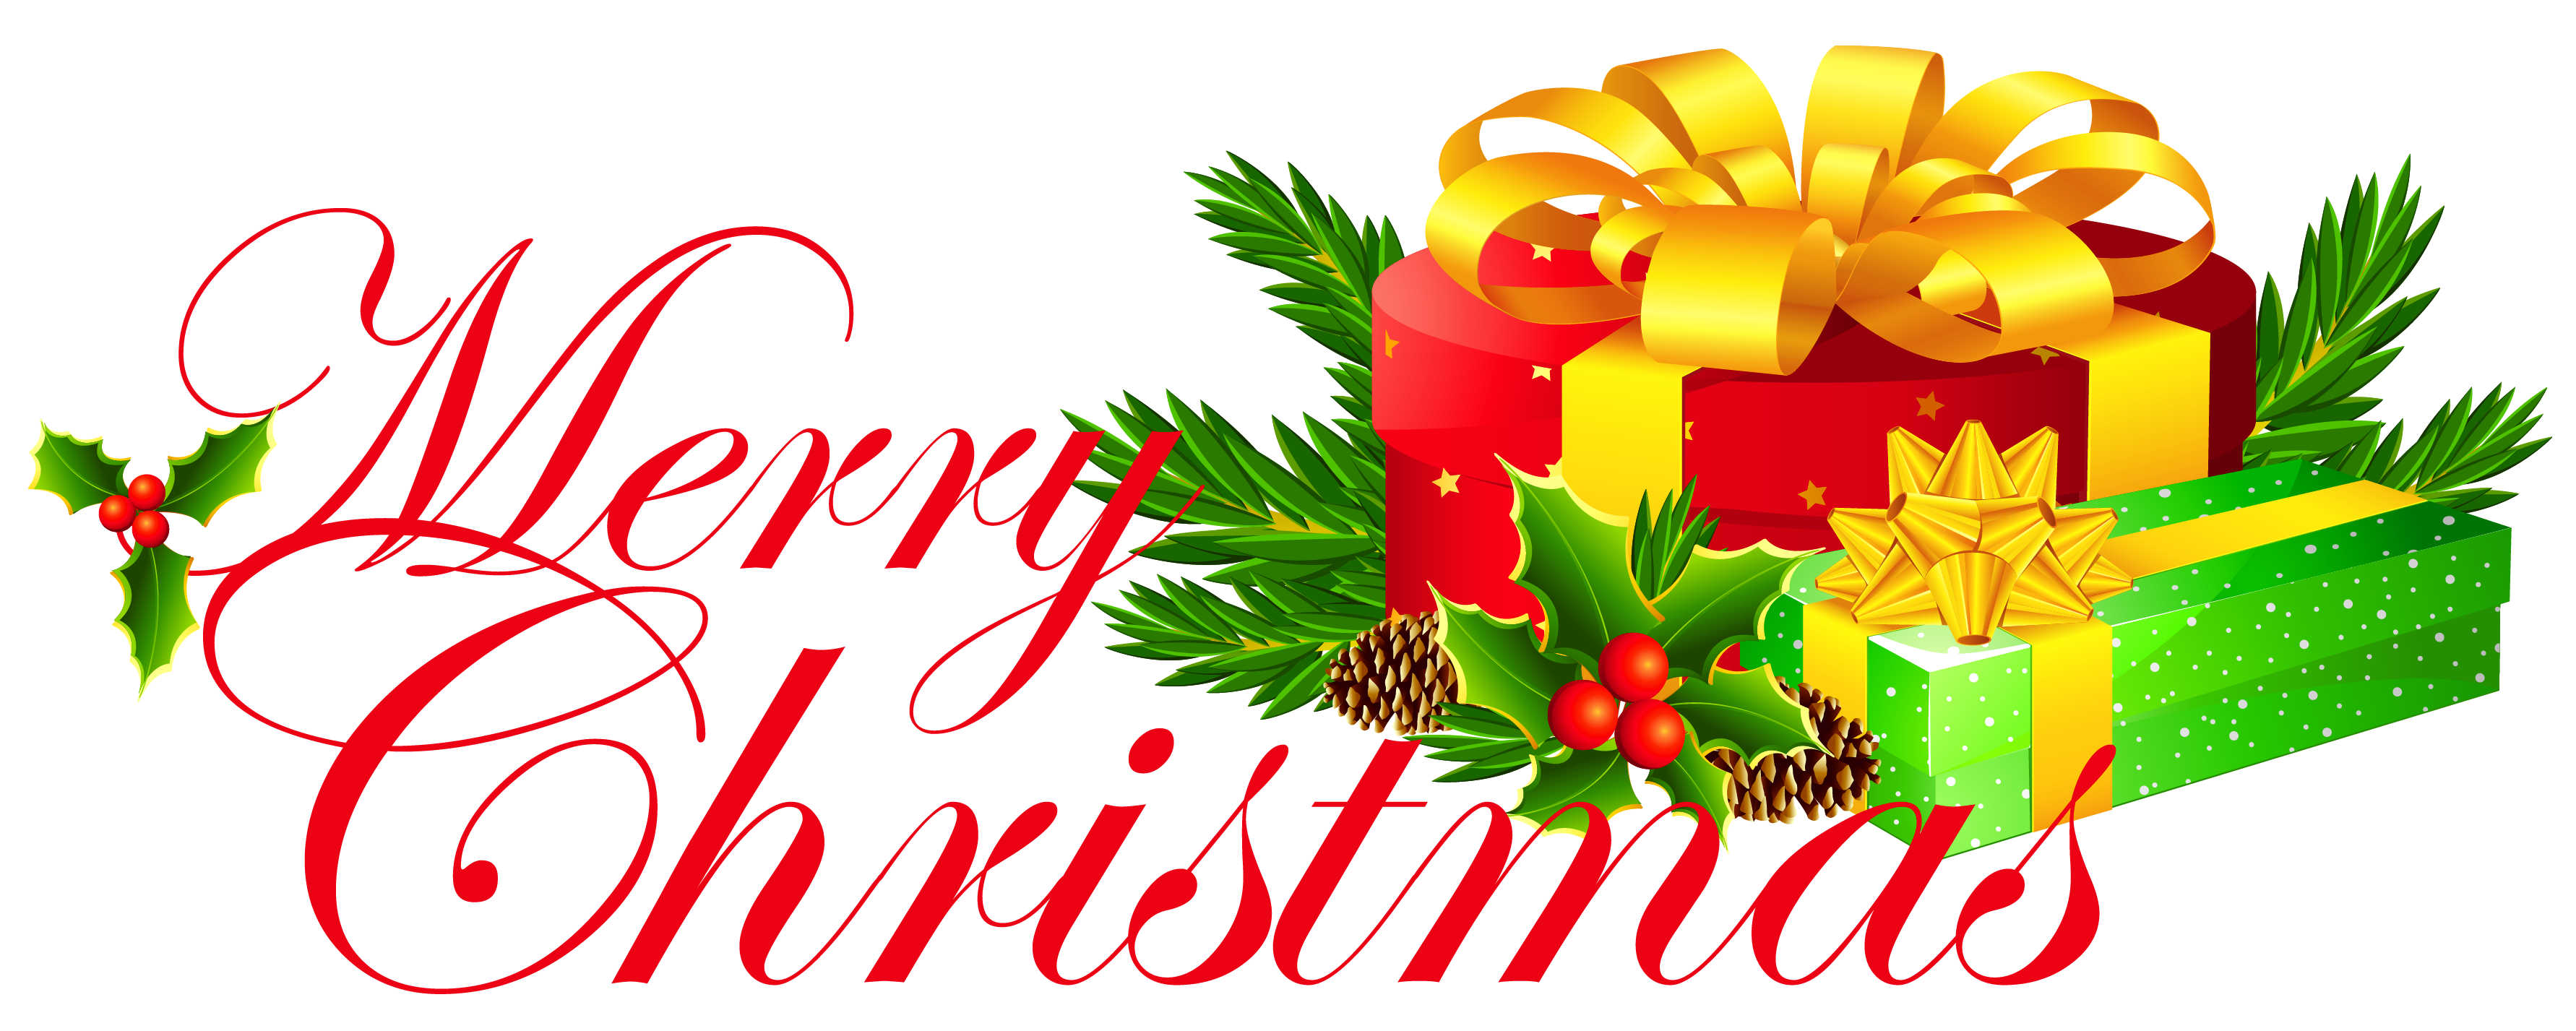 hd christmas clipart 20 free Cliparts   Download images on ...